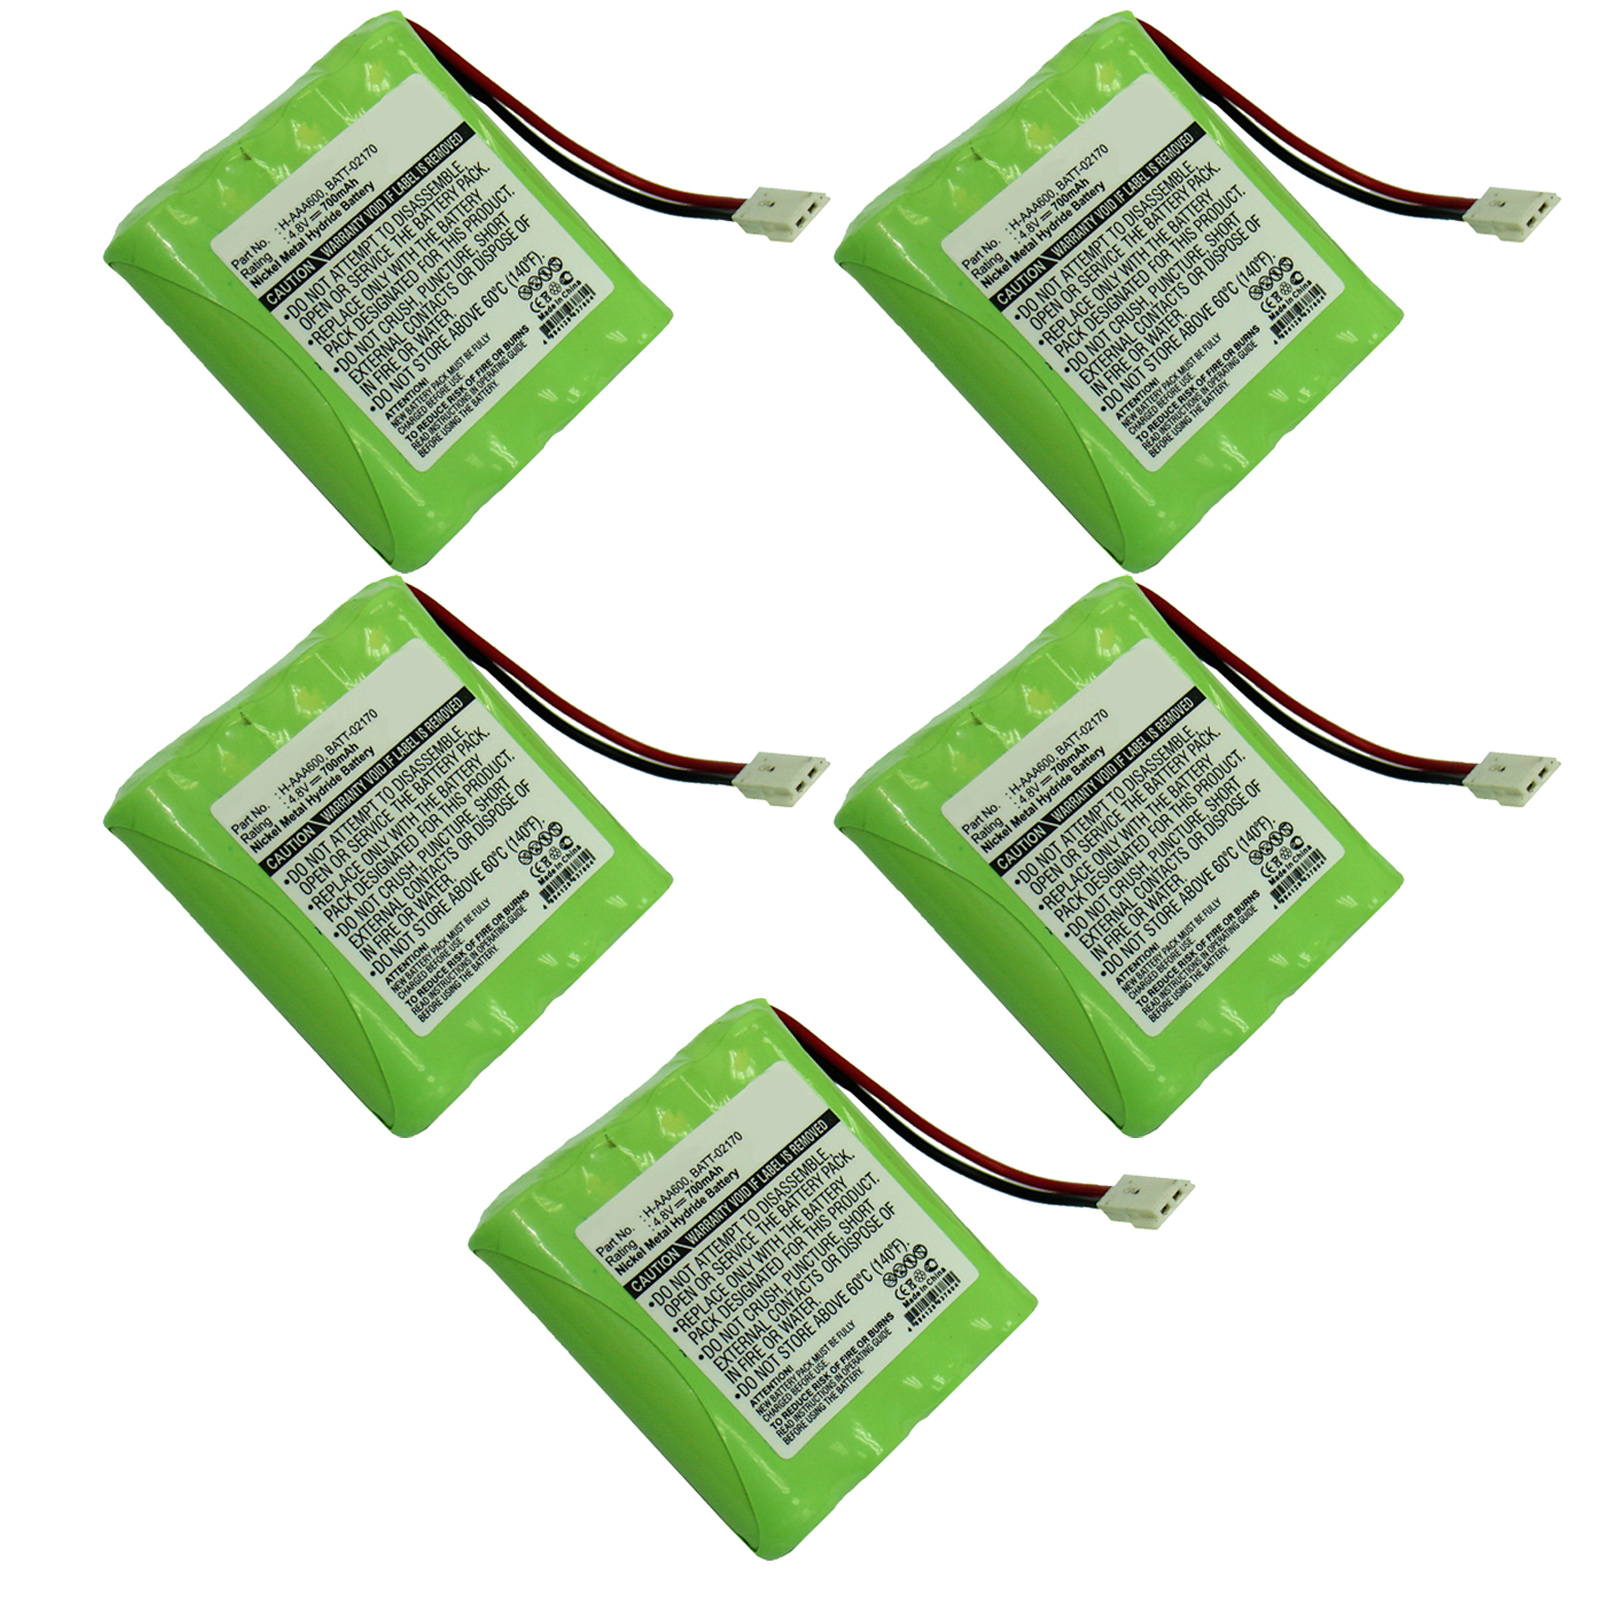 5x 4.8V 700mAh Baby Monitor Battery for Summer Infant H-AAA700 02320 02174